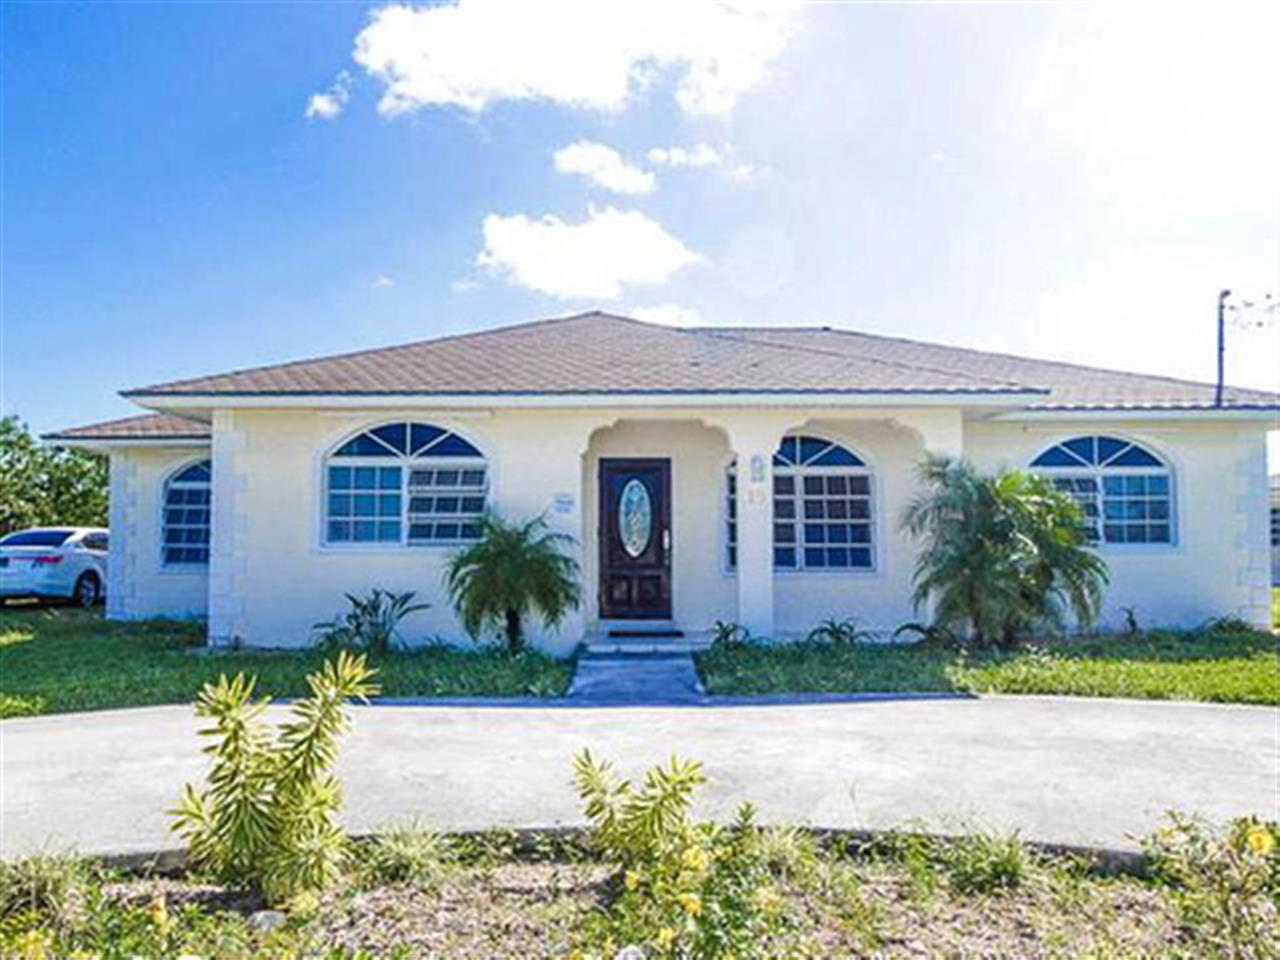 #NewListing ?This home is ready to go, itÆs got 3 bedrooms, 2 bathrooms and tons of living space!  Priced at $175,000  Just off Arden Forest Road and walking distance to Taino Beach, youÆll love the location as much as I do. Home comes equipped with hurricane shutters and fully functional generator, this home is safe and secure.